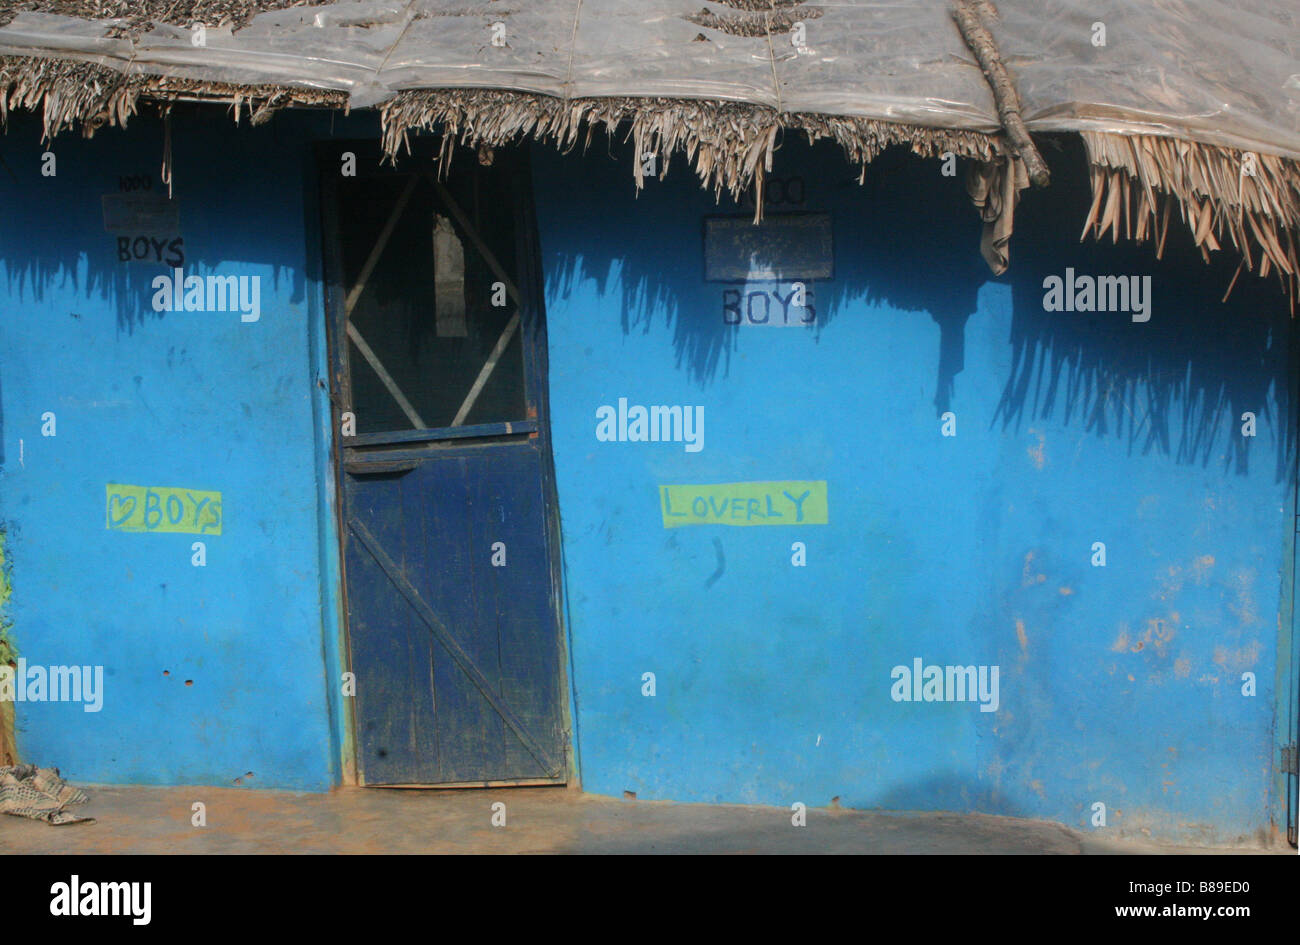 Blue village house with graffiti 'Boys Loverly' - Stock Image